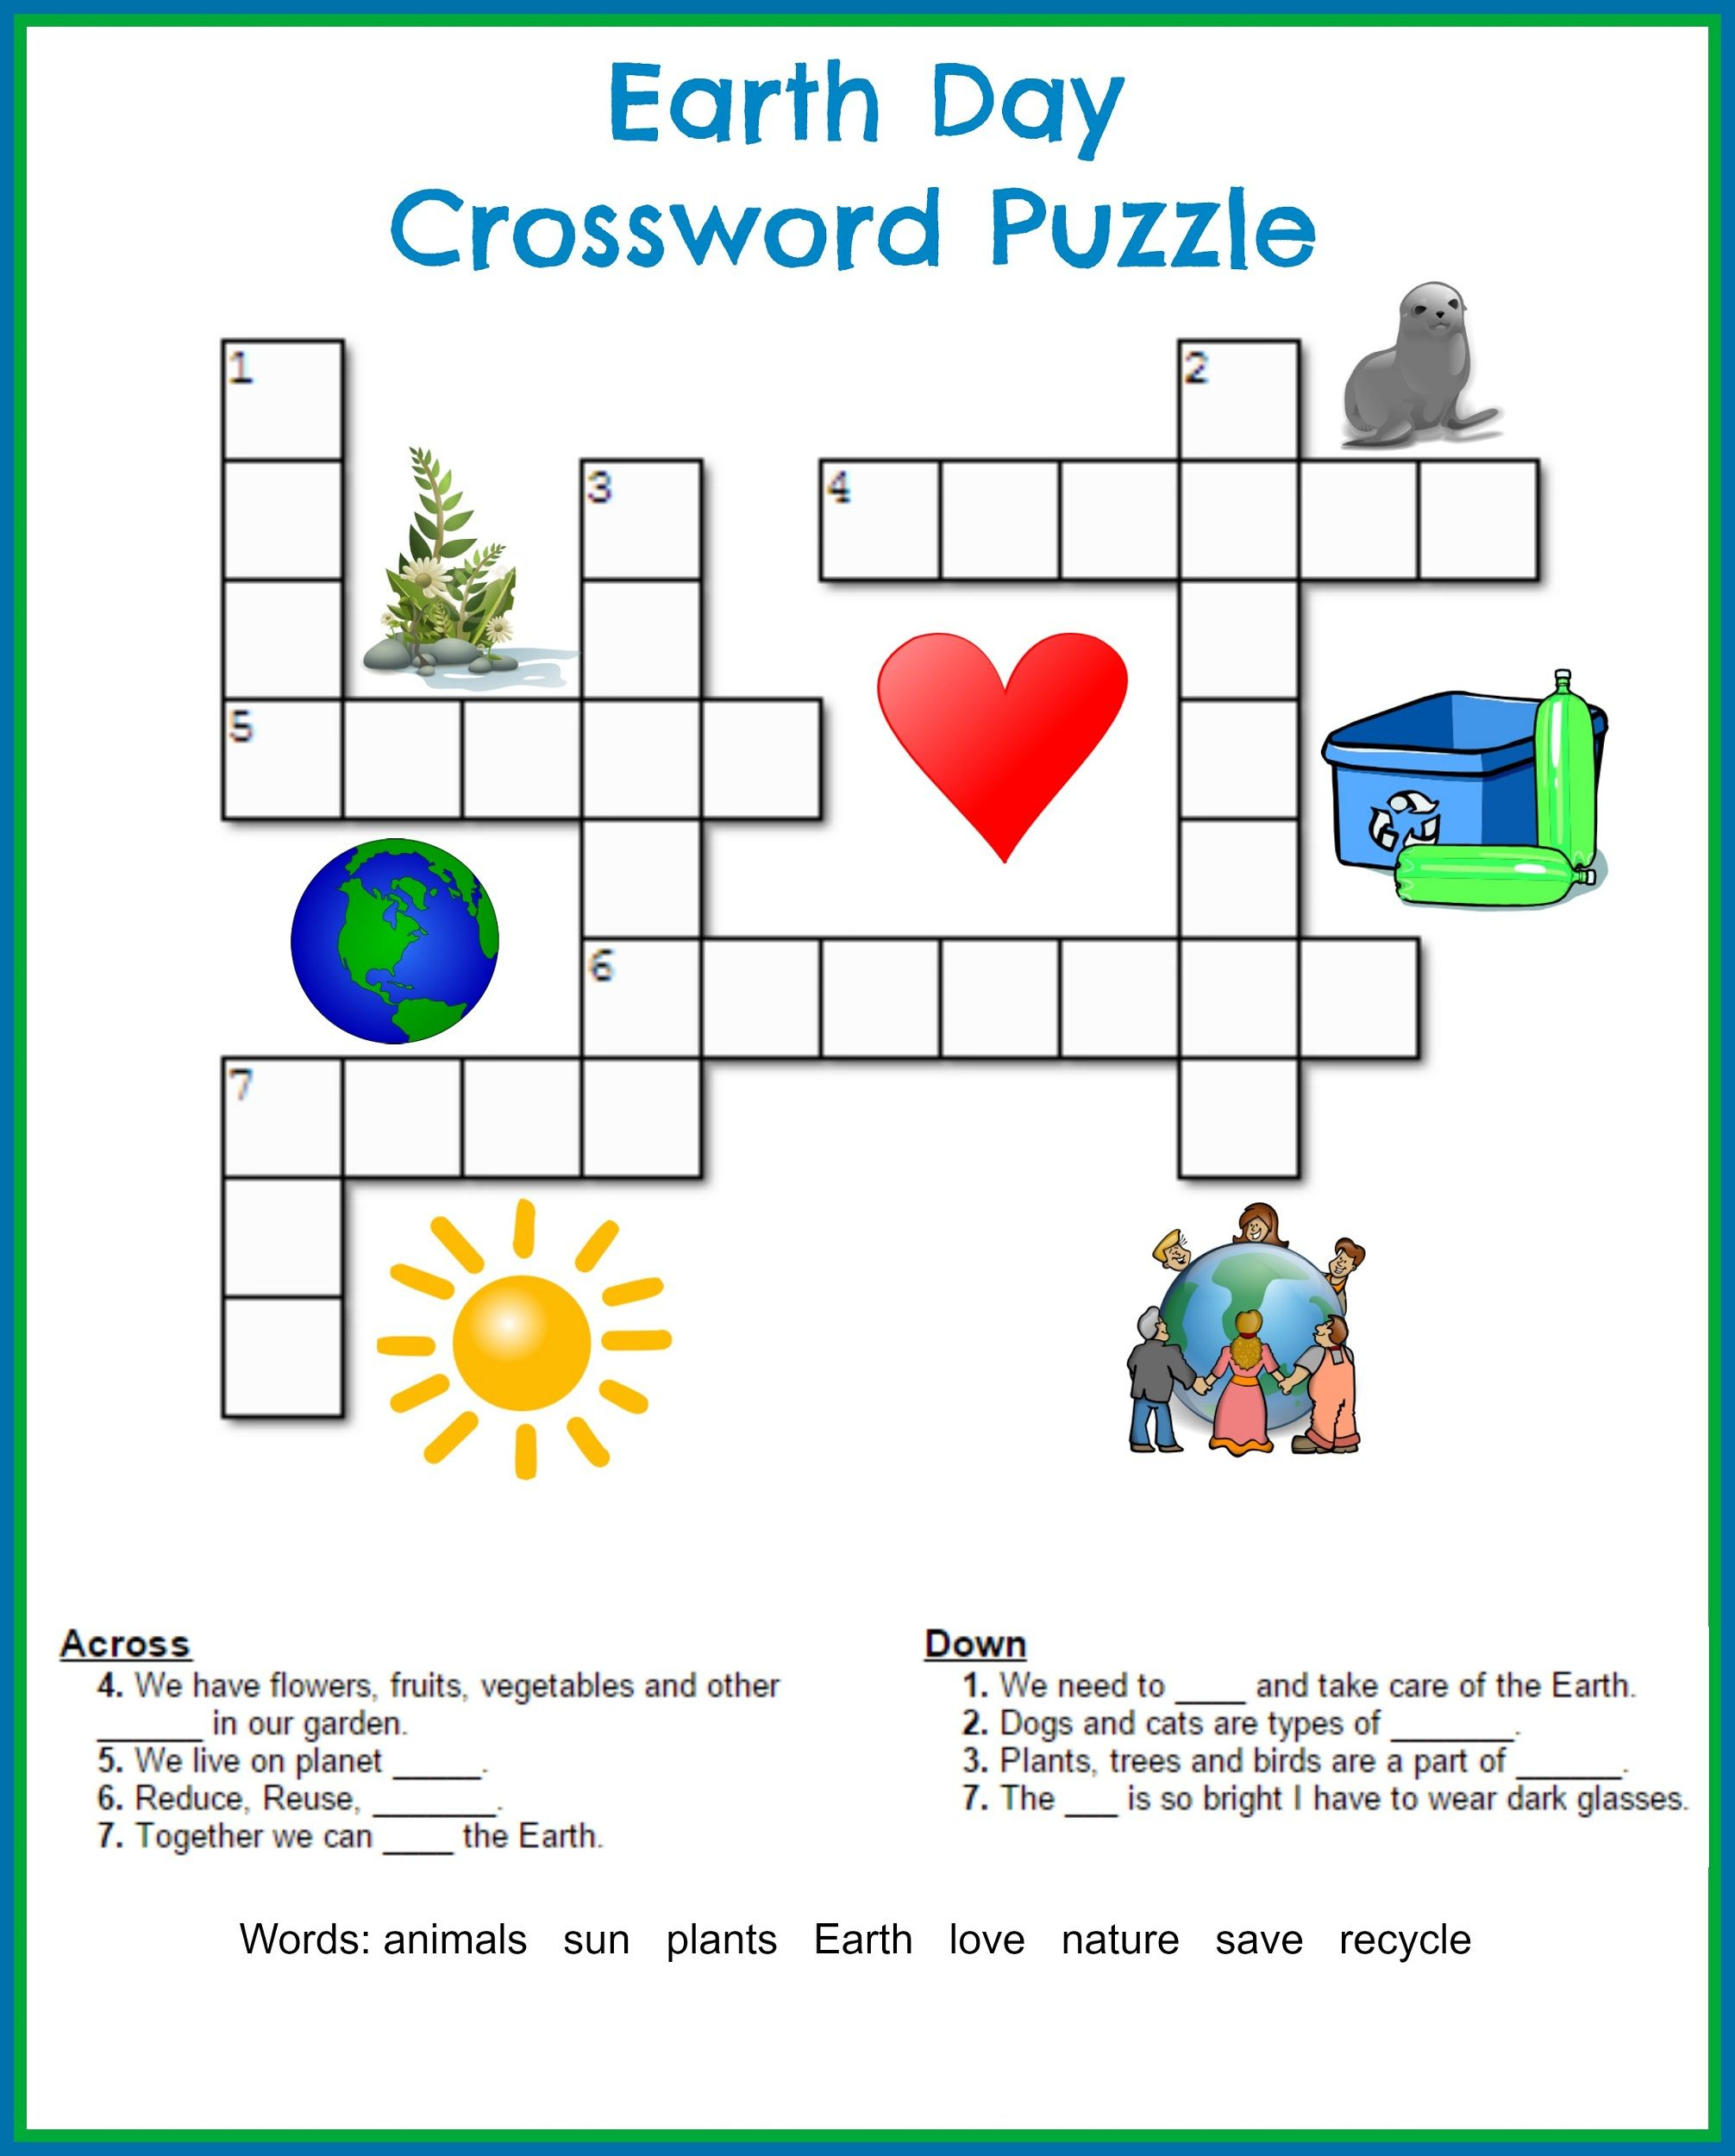 Printable Crossword Puzzles Kids | Crossword Puzzles On Earth - First Grade Crossword Puzzles Printable